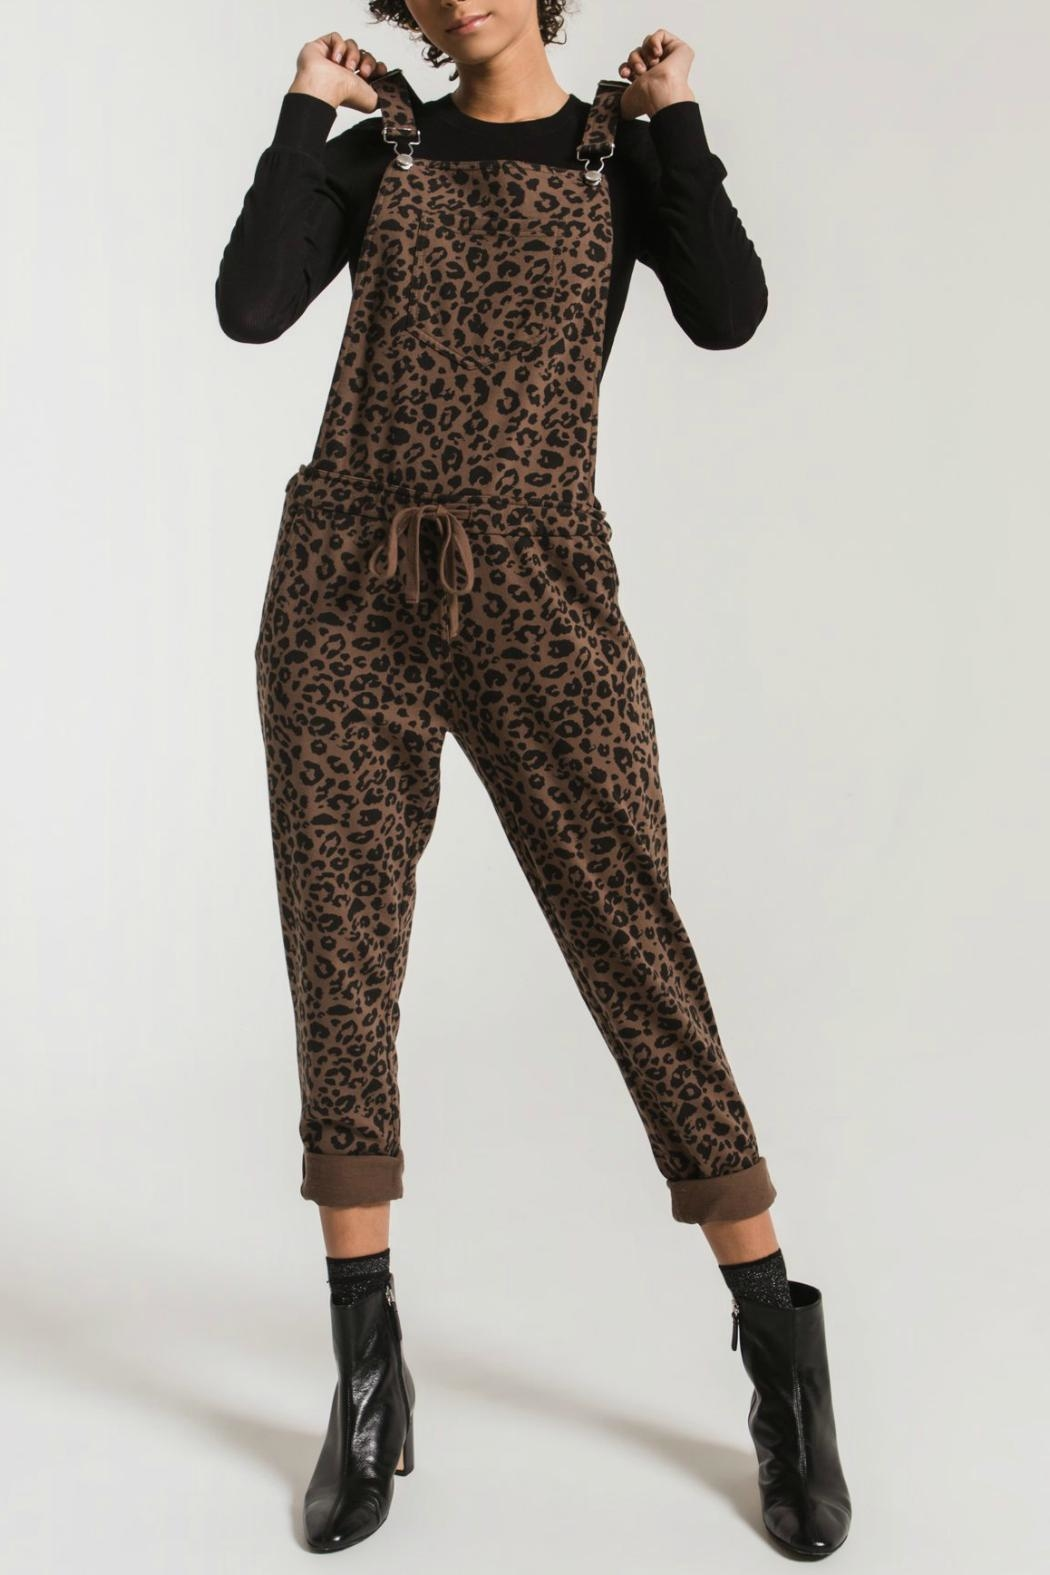 z supply The Leopard Overalls - Main Image